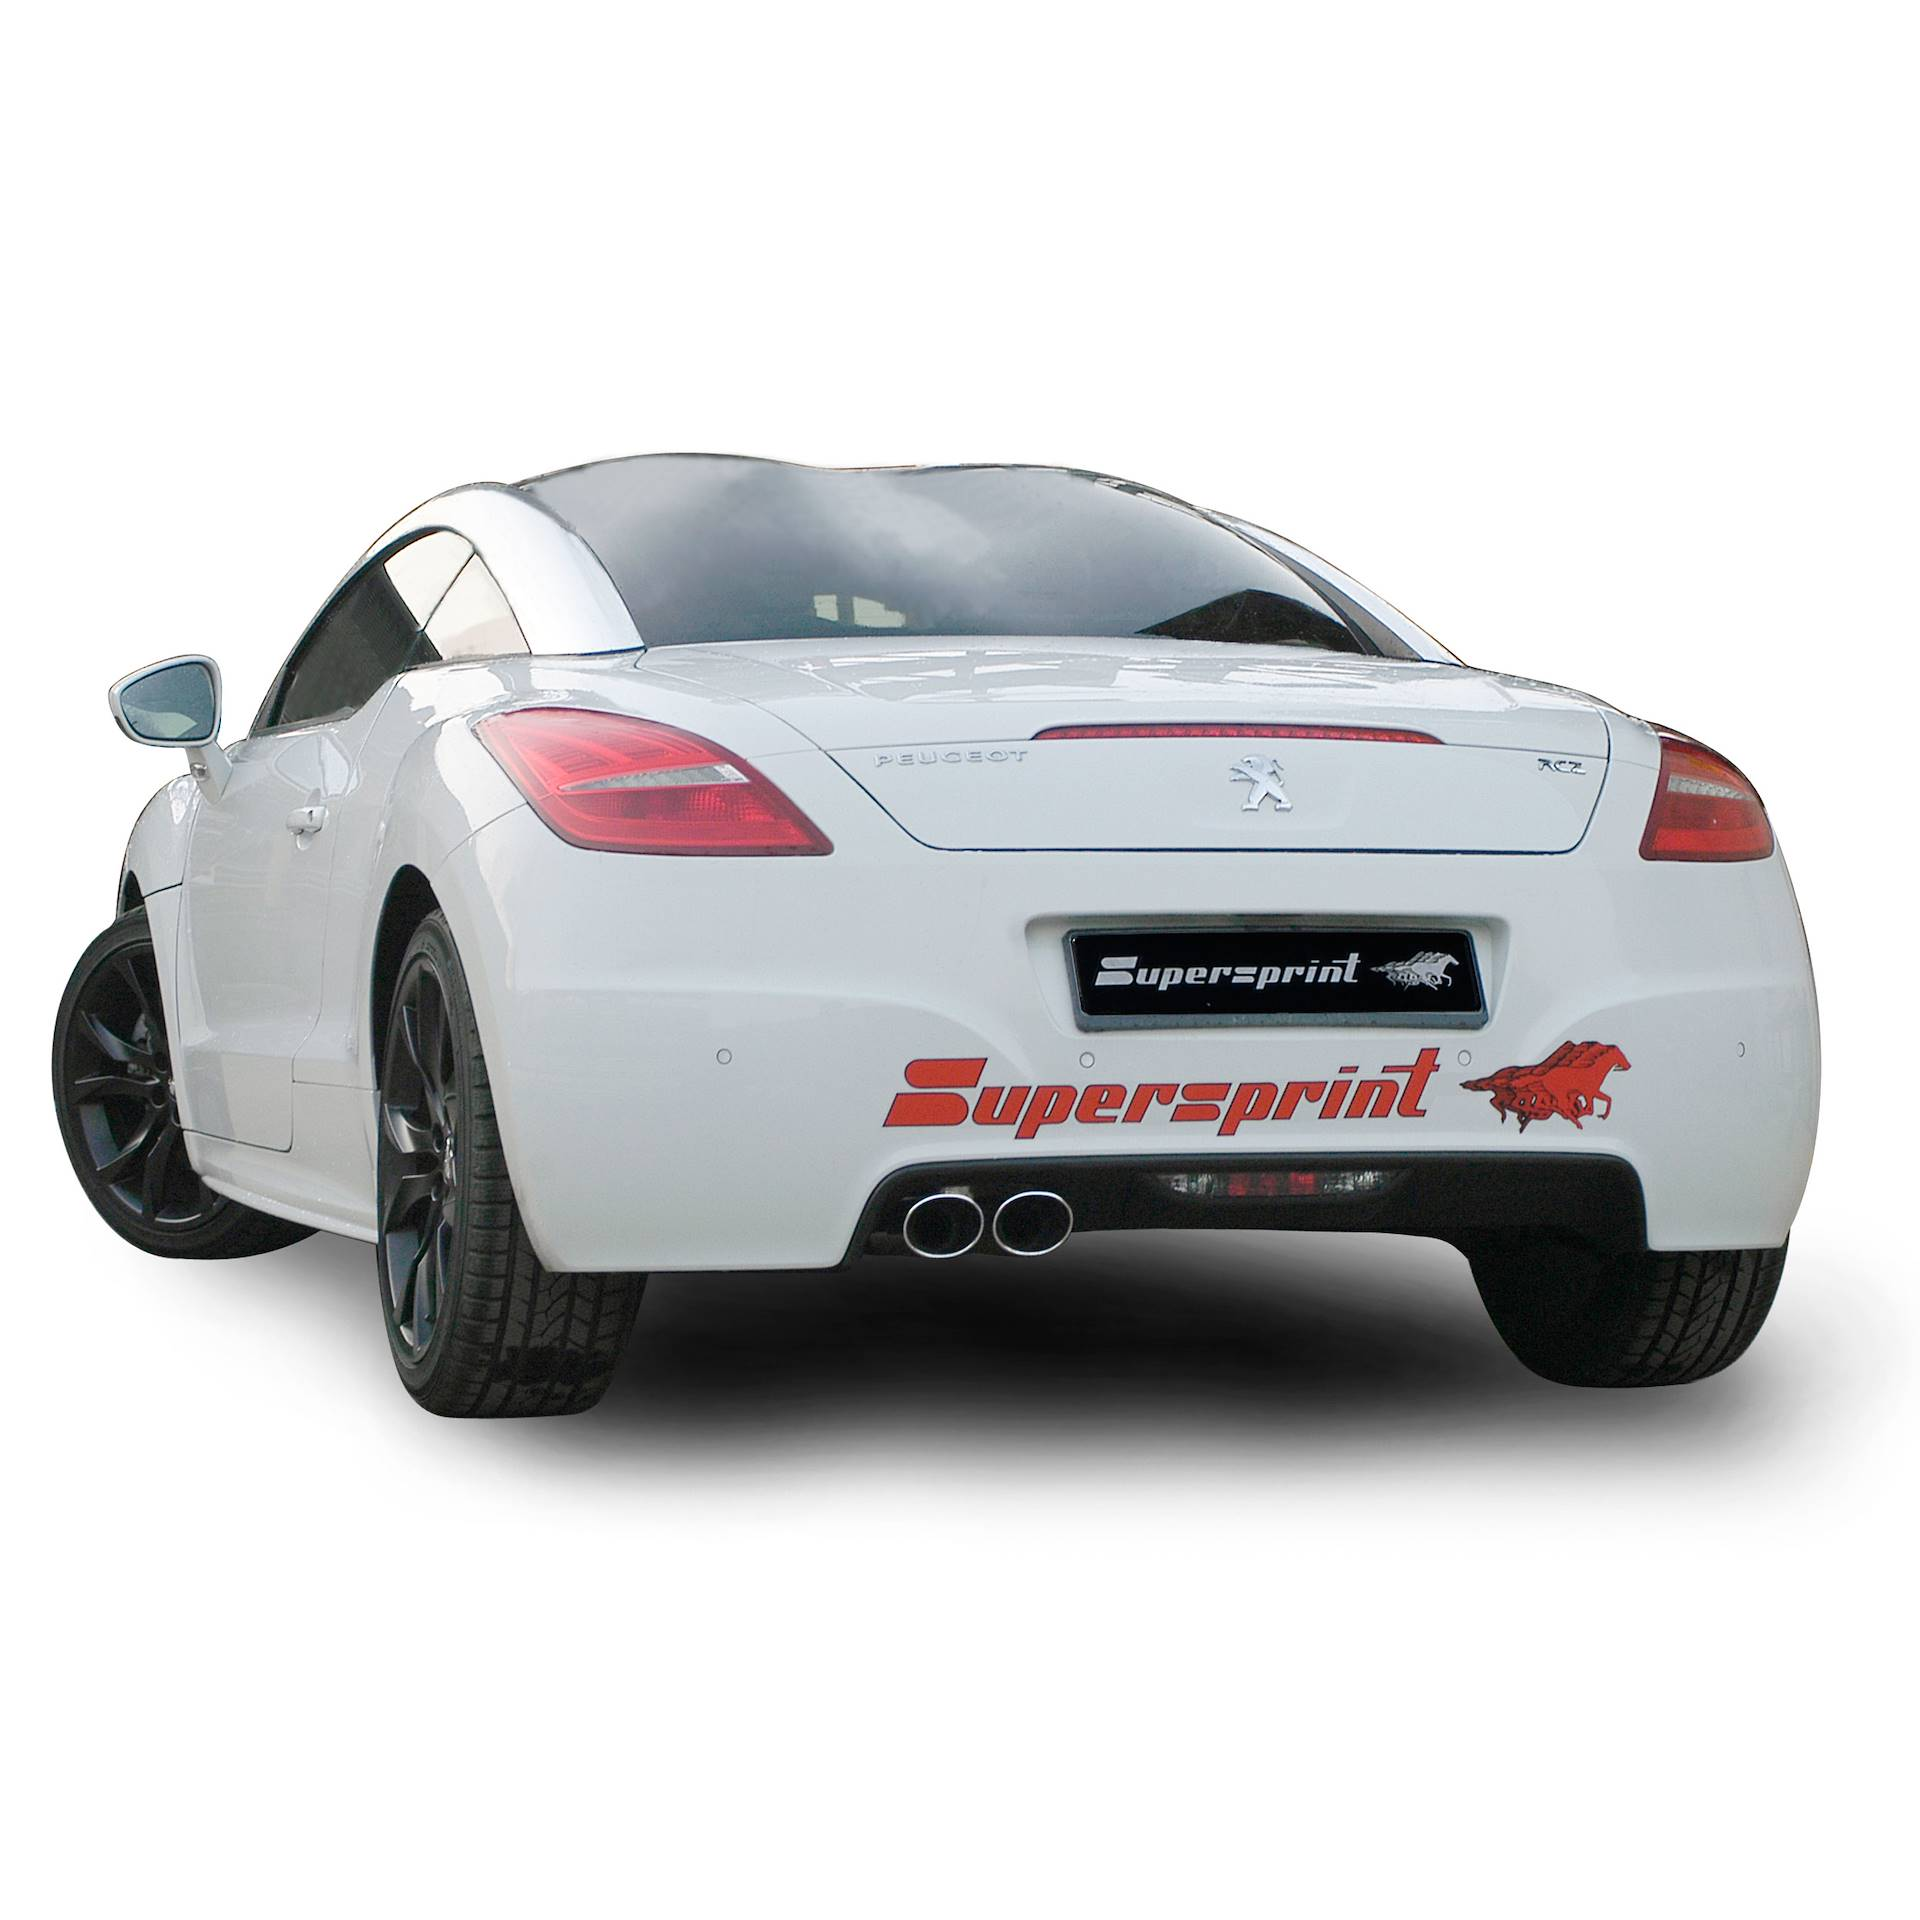 peugeot rcz 1 6 thp 200 hp 2010 1015 peugeot impianti di scarico. Black Bedroom Furniture Sets. Home Design Ideas